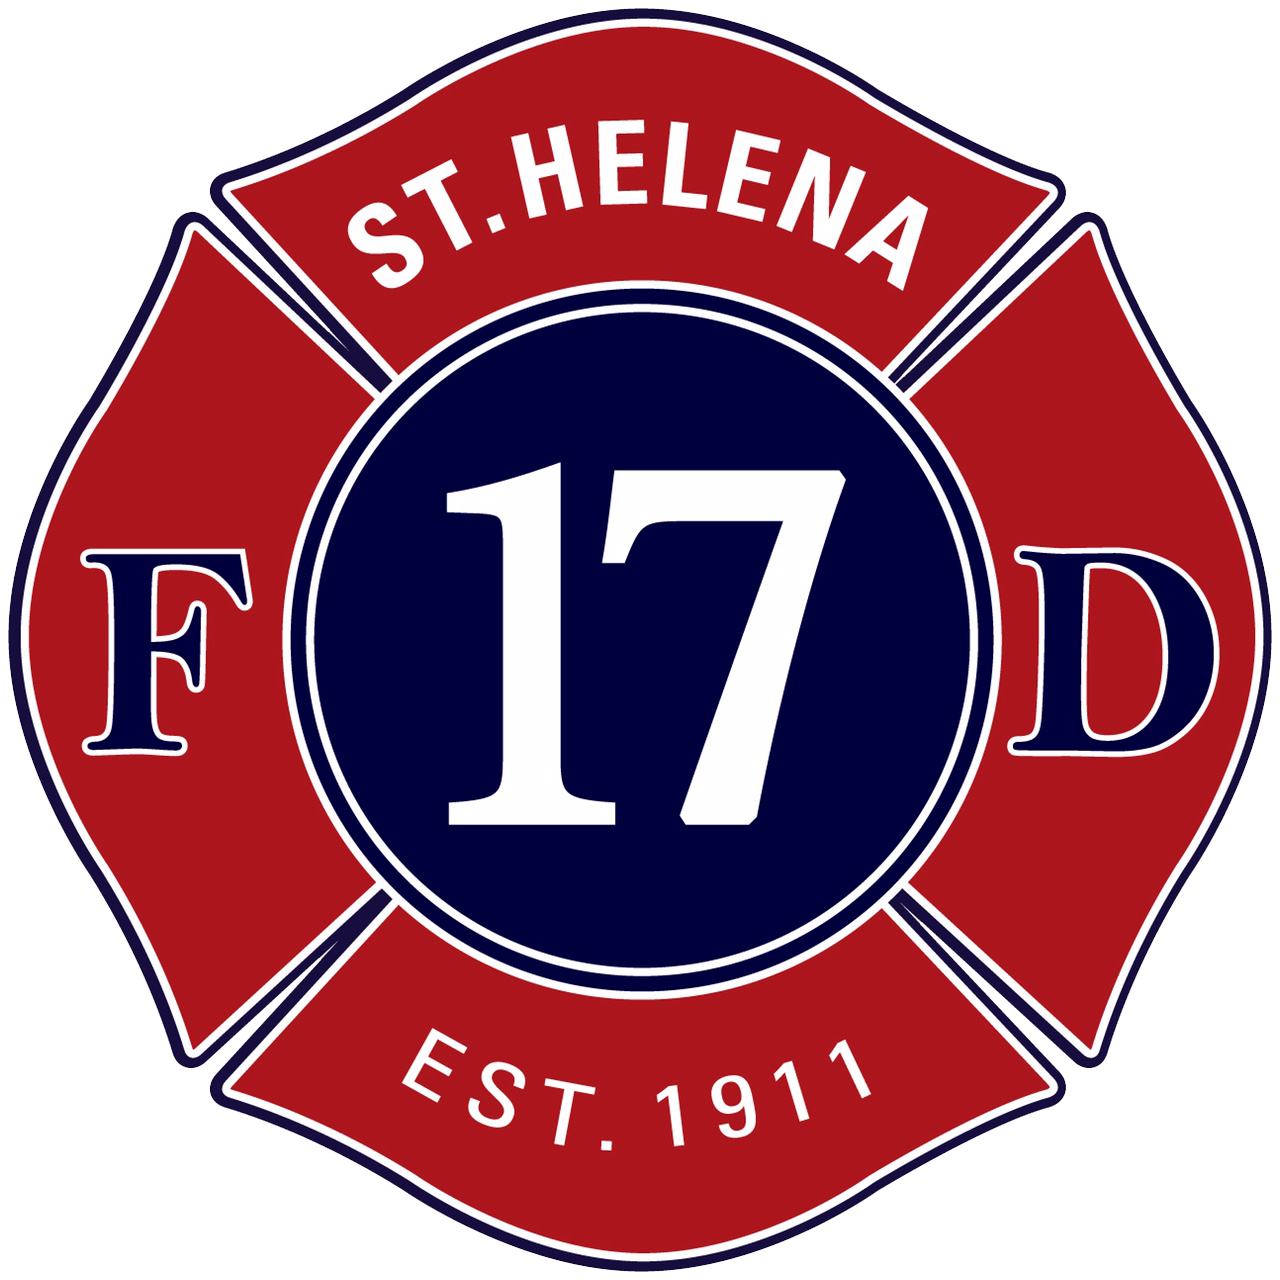 St. Helena Fire Department Company Store Logo